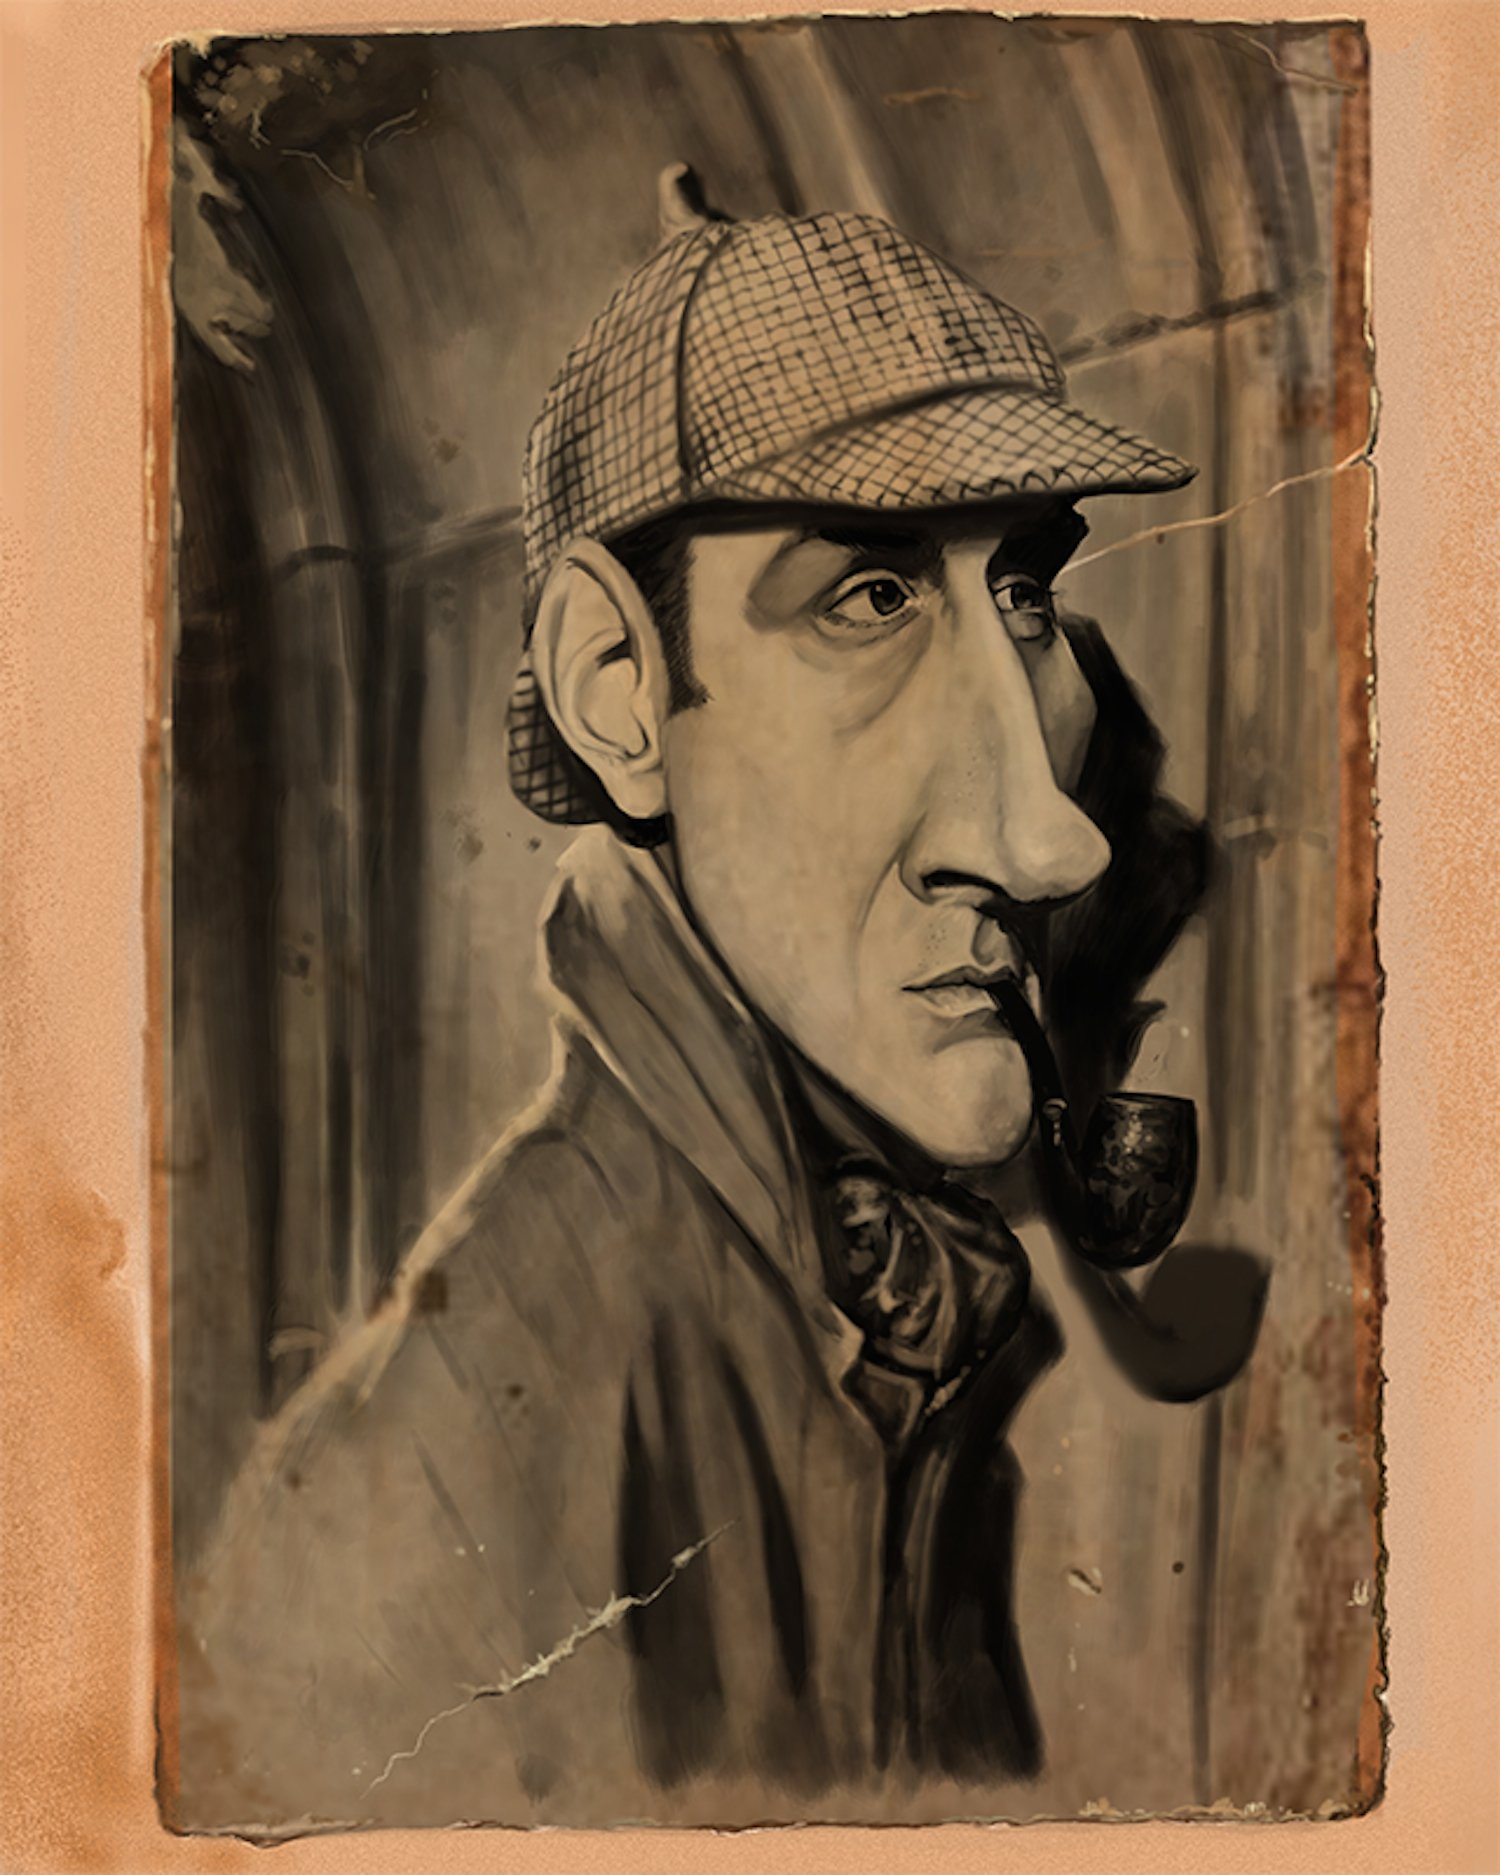 Basil Rathbone Sherlock Holmes Caricature Limited Edition (1 of 20) Giclee on Canvas: Signed, Numbered, Personalized Certificate of Authenticity, Ready to Hang, Great Home & Office Wall Decor, Gift